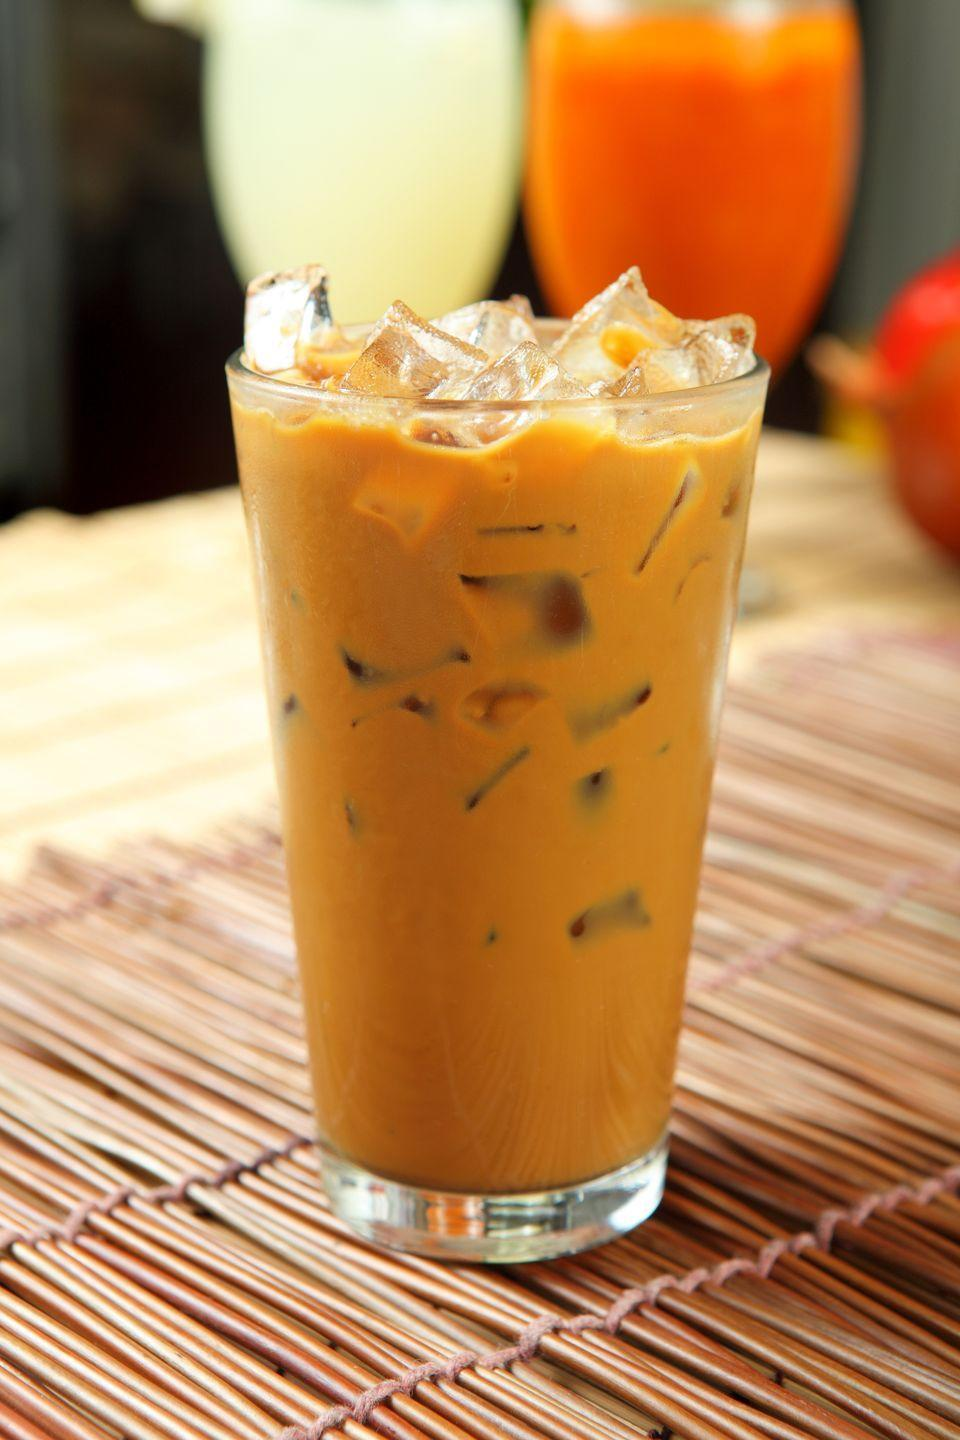 "<p>A sweet and intense version of iced coffee, this drink typically combines fresh French roast coffee made with a Vietnamese coffee maker and sweetened condensed milk over ice. </p><p><strong>Pro tip:</strong> You can also prepare your own version with a different brew method (like a French press or moka pot) and different beans, so long as the brew is still strong.<strong><br></strong></p><p><em><a href=""https://whiteonricecouple.com/recipes/vietnamese-iced-coffee-recipe/"" rel=""nofollow noopener"" target=""_blank"" data-ylk=""slk:Get the recipe for Vietnamese Iced Coffee from White on Rice Couple »"" class=""link rapid-noclick-resp"">Get the recipe for Vietnamese Iced Coffee from White on Rice Couple »</a></em></p>"